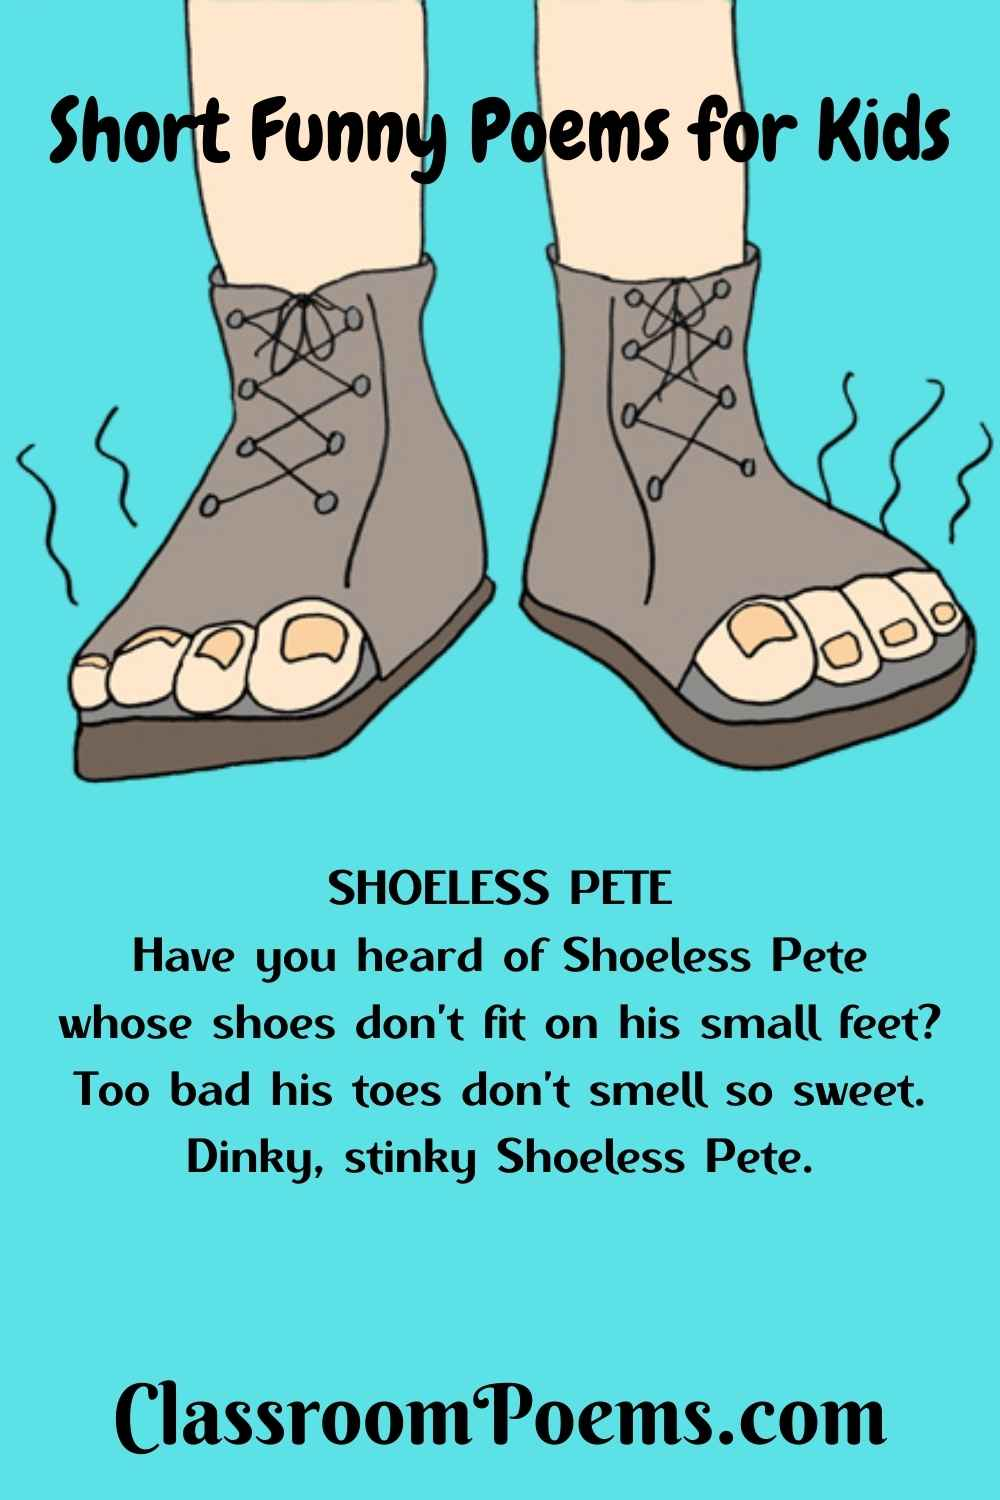 Toeless shoes cartoon. STINKY PETE a funny short poem by Denise Rodgers on ClassroomPoems.com.